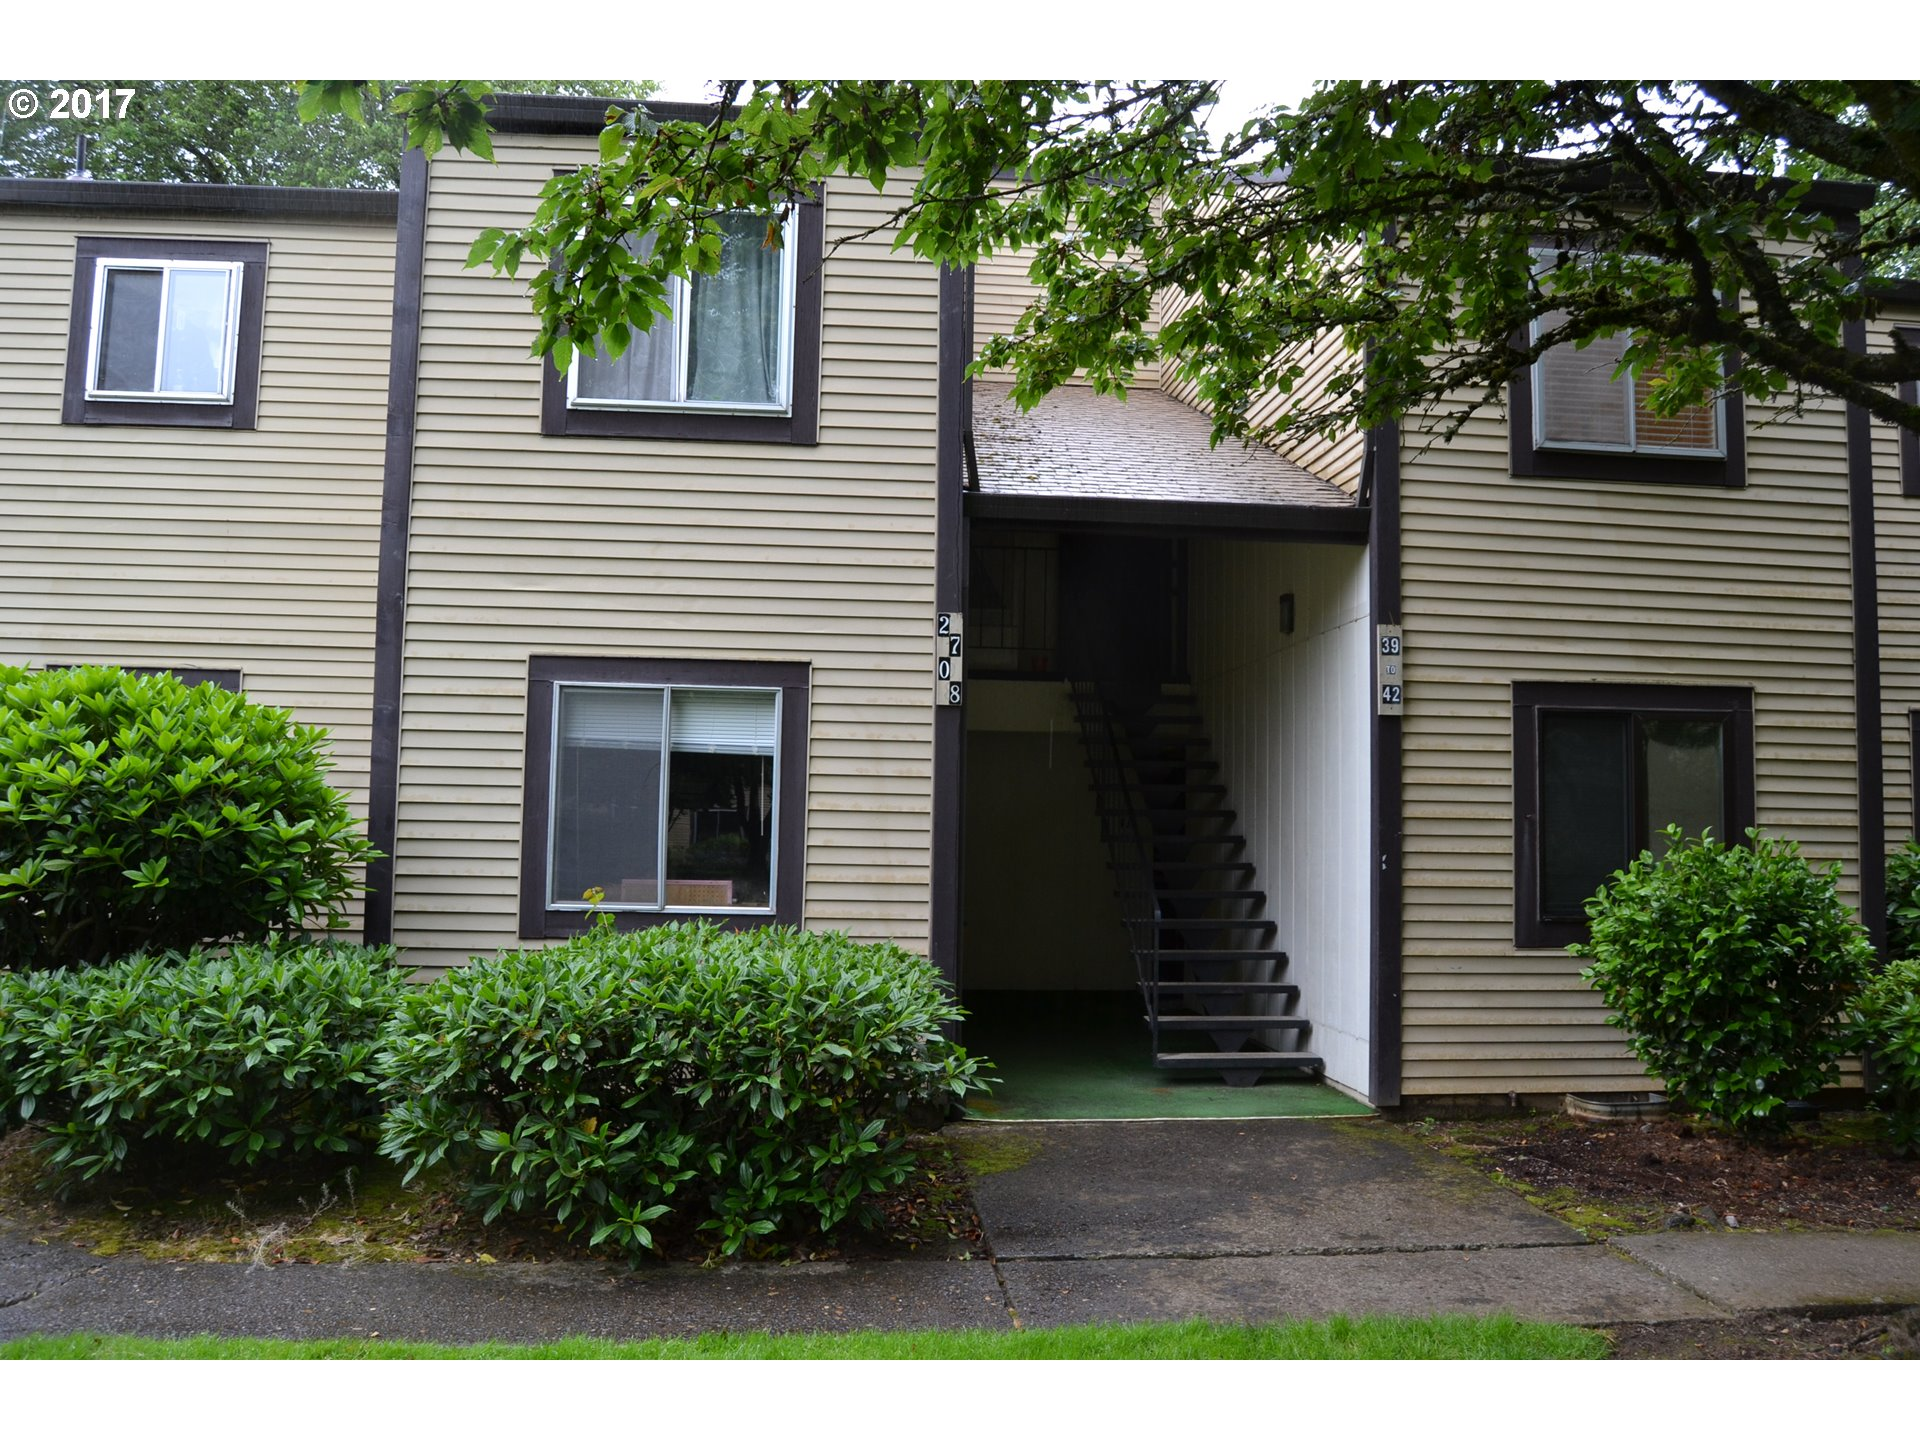 796 sq. ft 2 bedrooms 1 bathrooms  House For Sale, Portland, OR